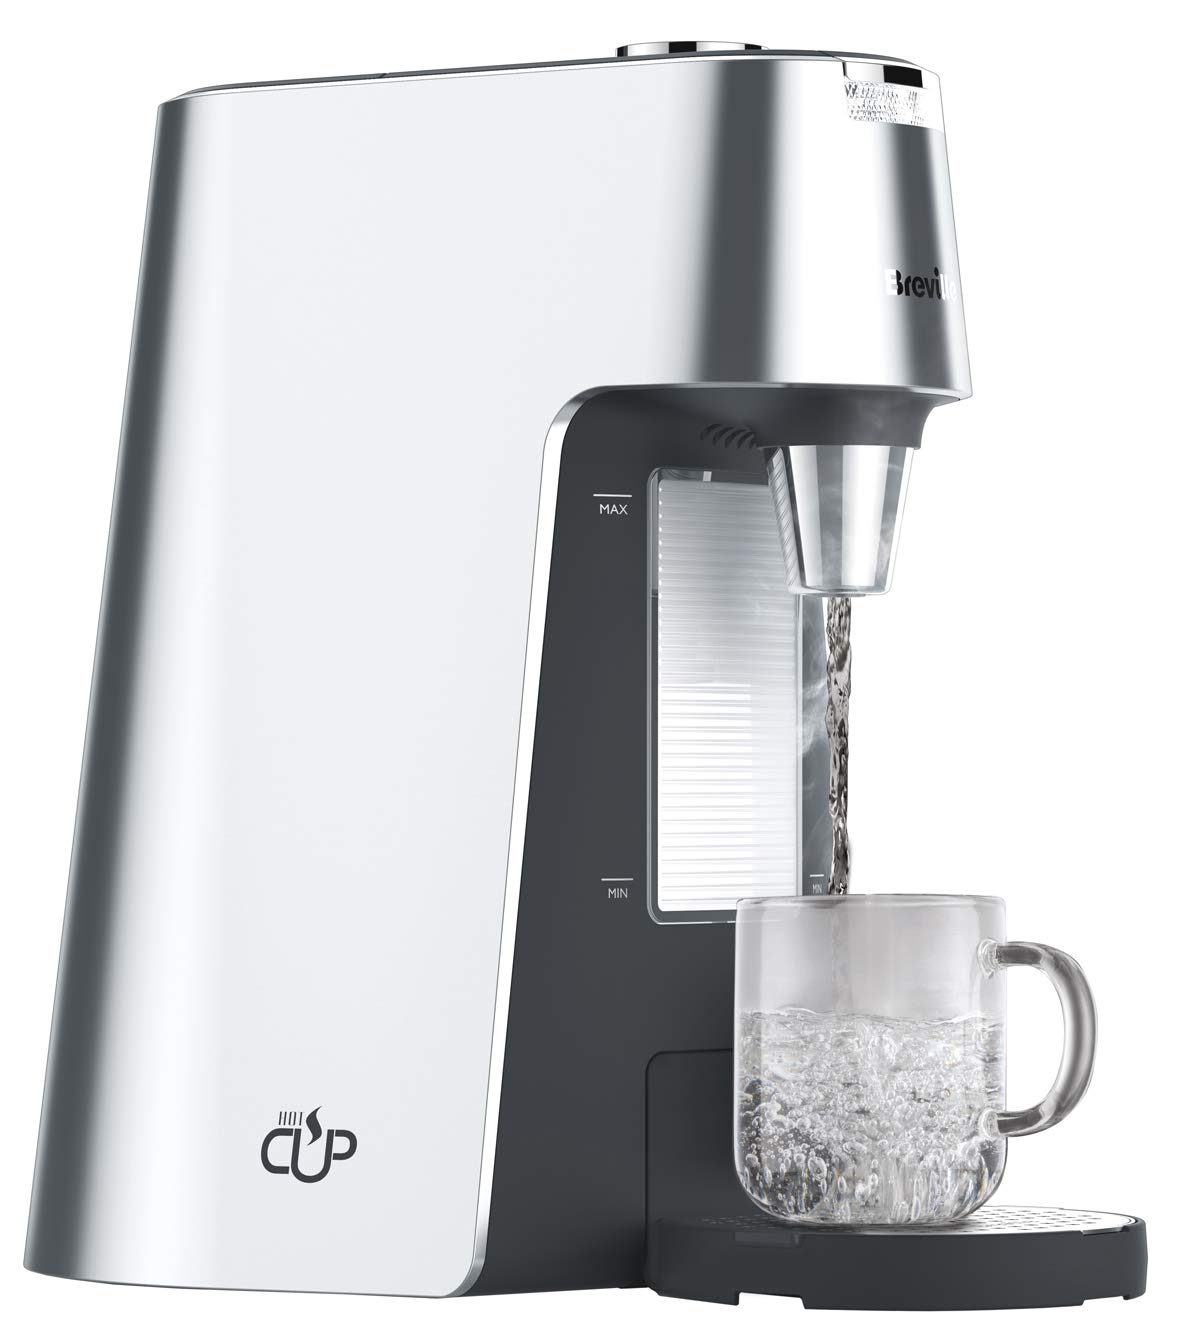 Breville HotCup Hot Water Dispenser with Height Adjust and Variable Dispense, 2.0 Litre, Silver VKT111